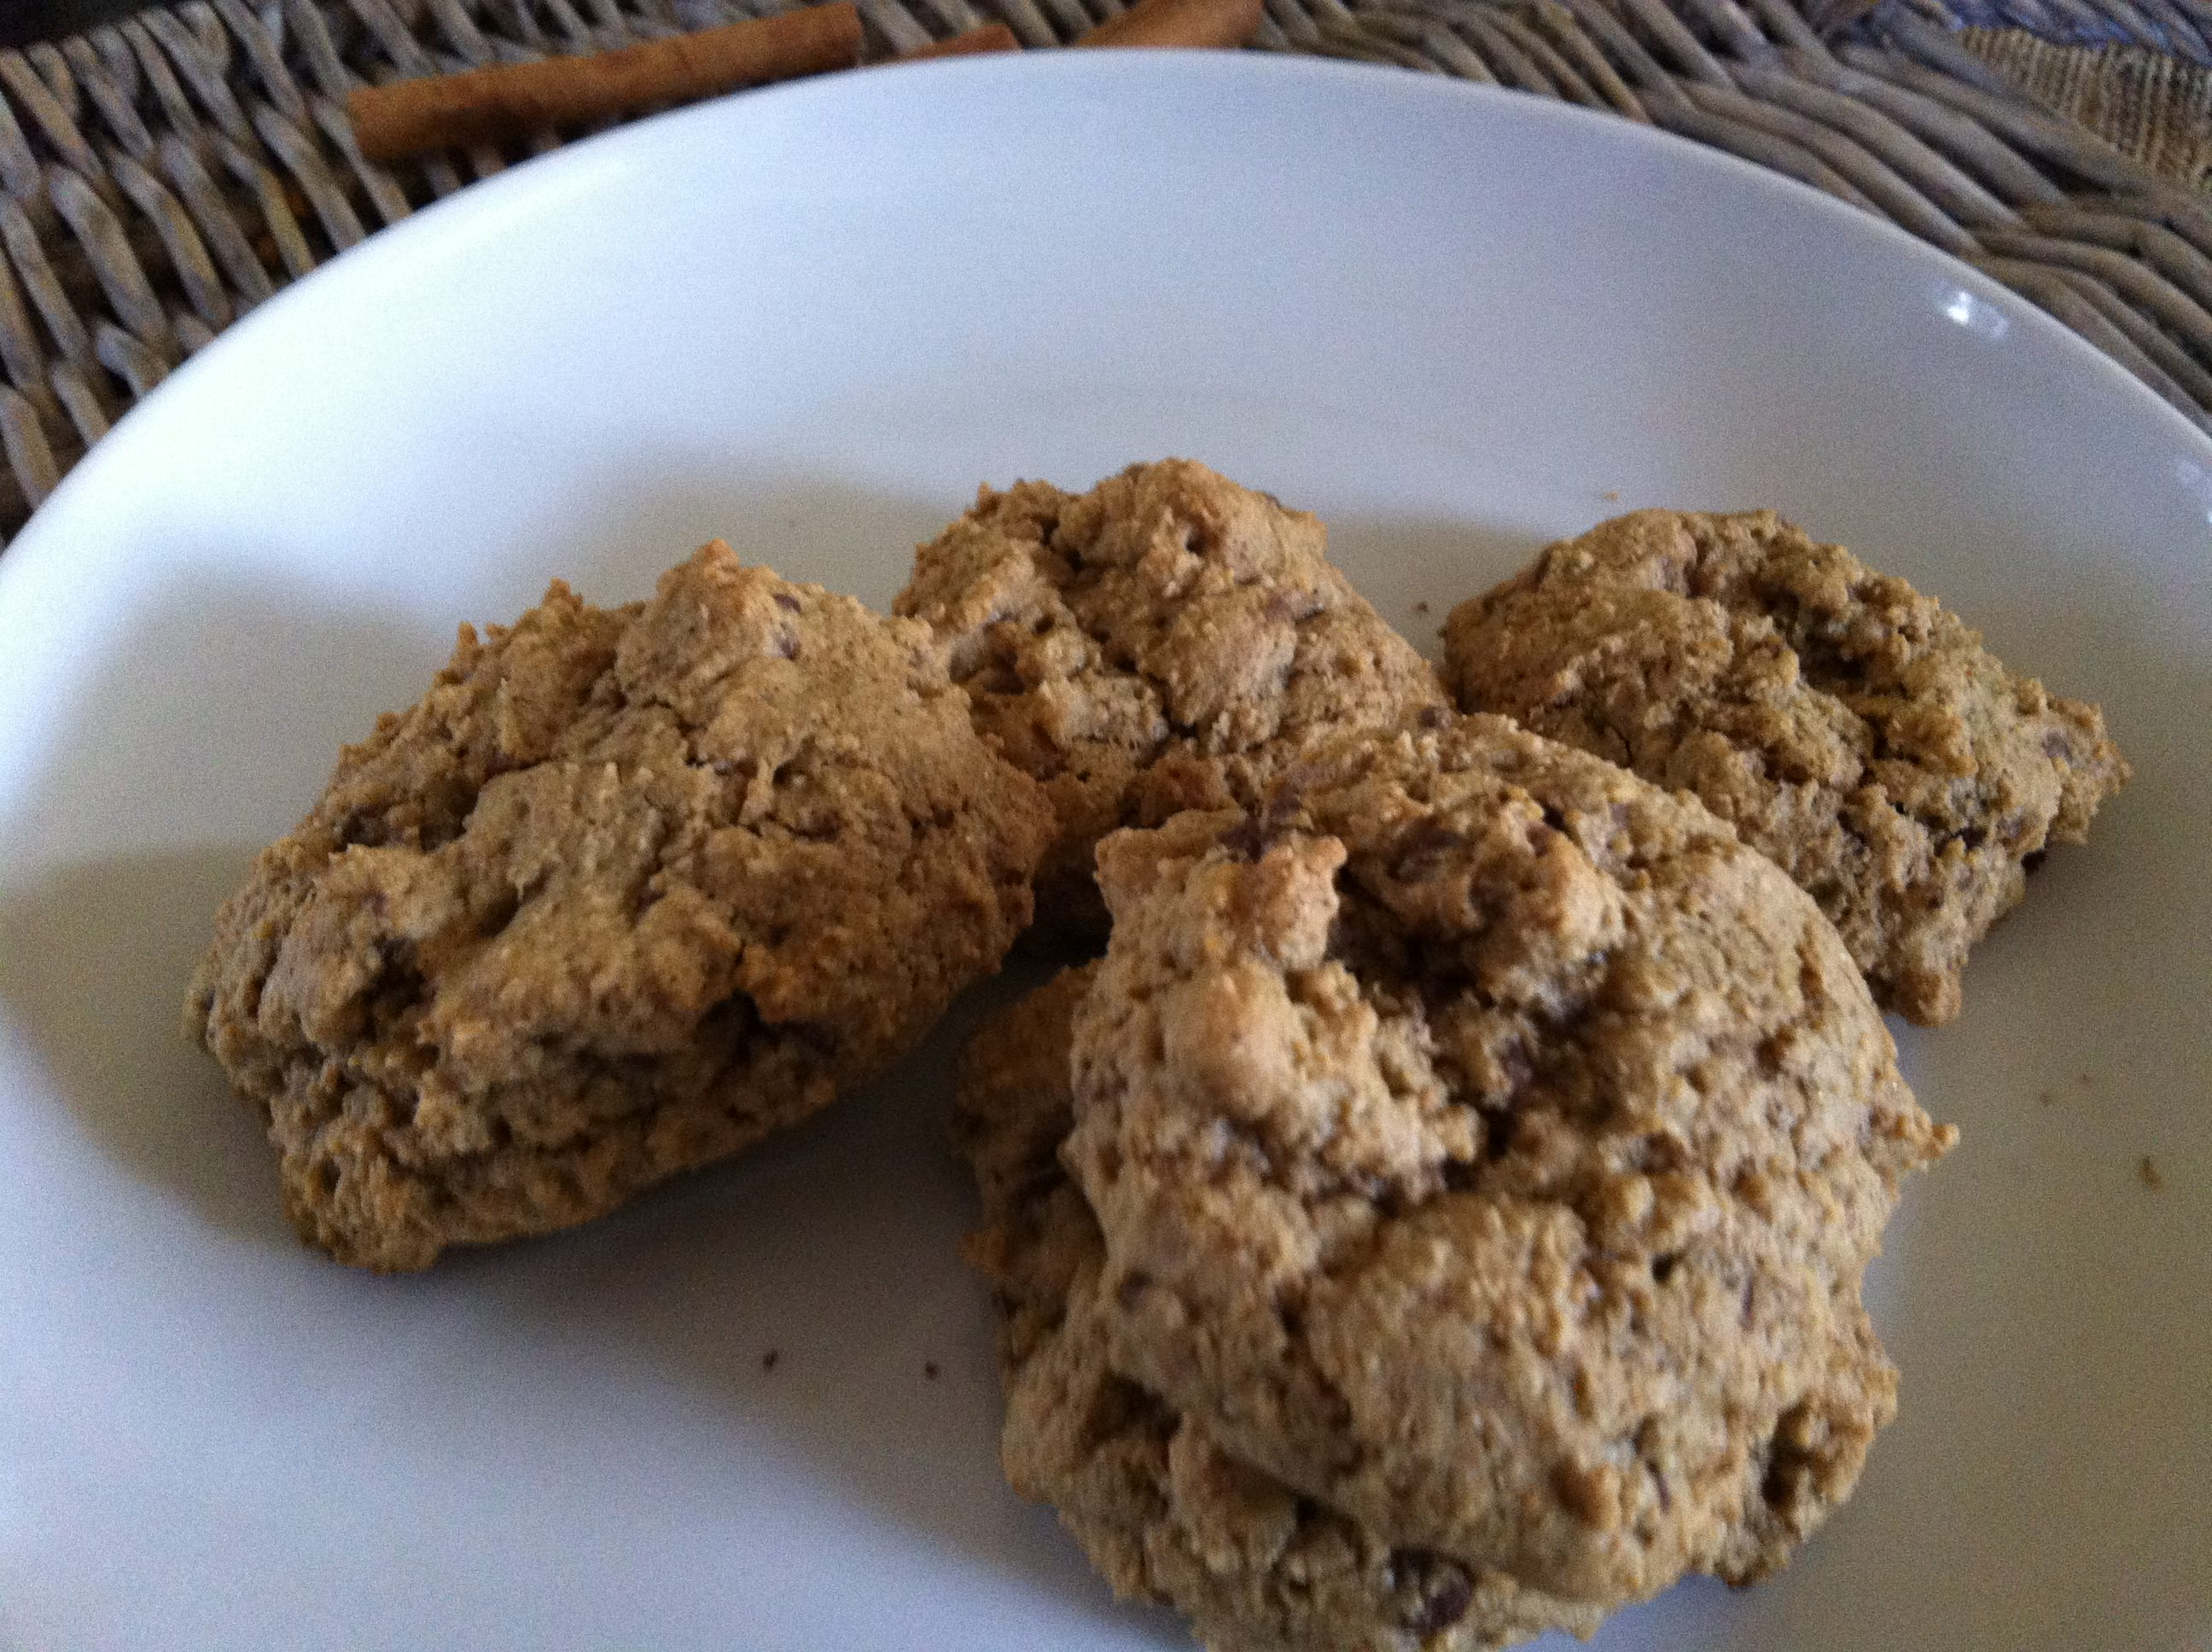 another plate of Pumpkin Spiced Chocolate Chip Cookies